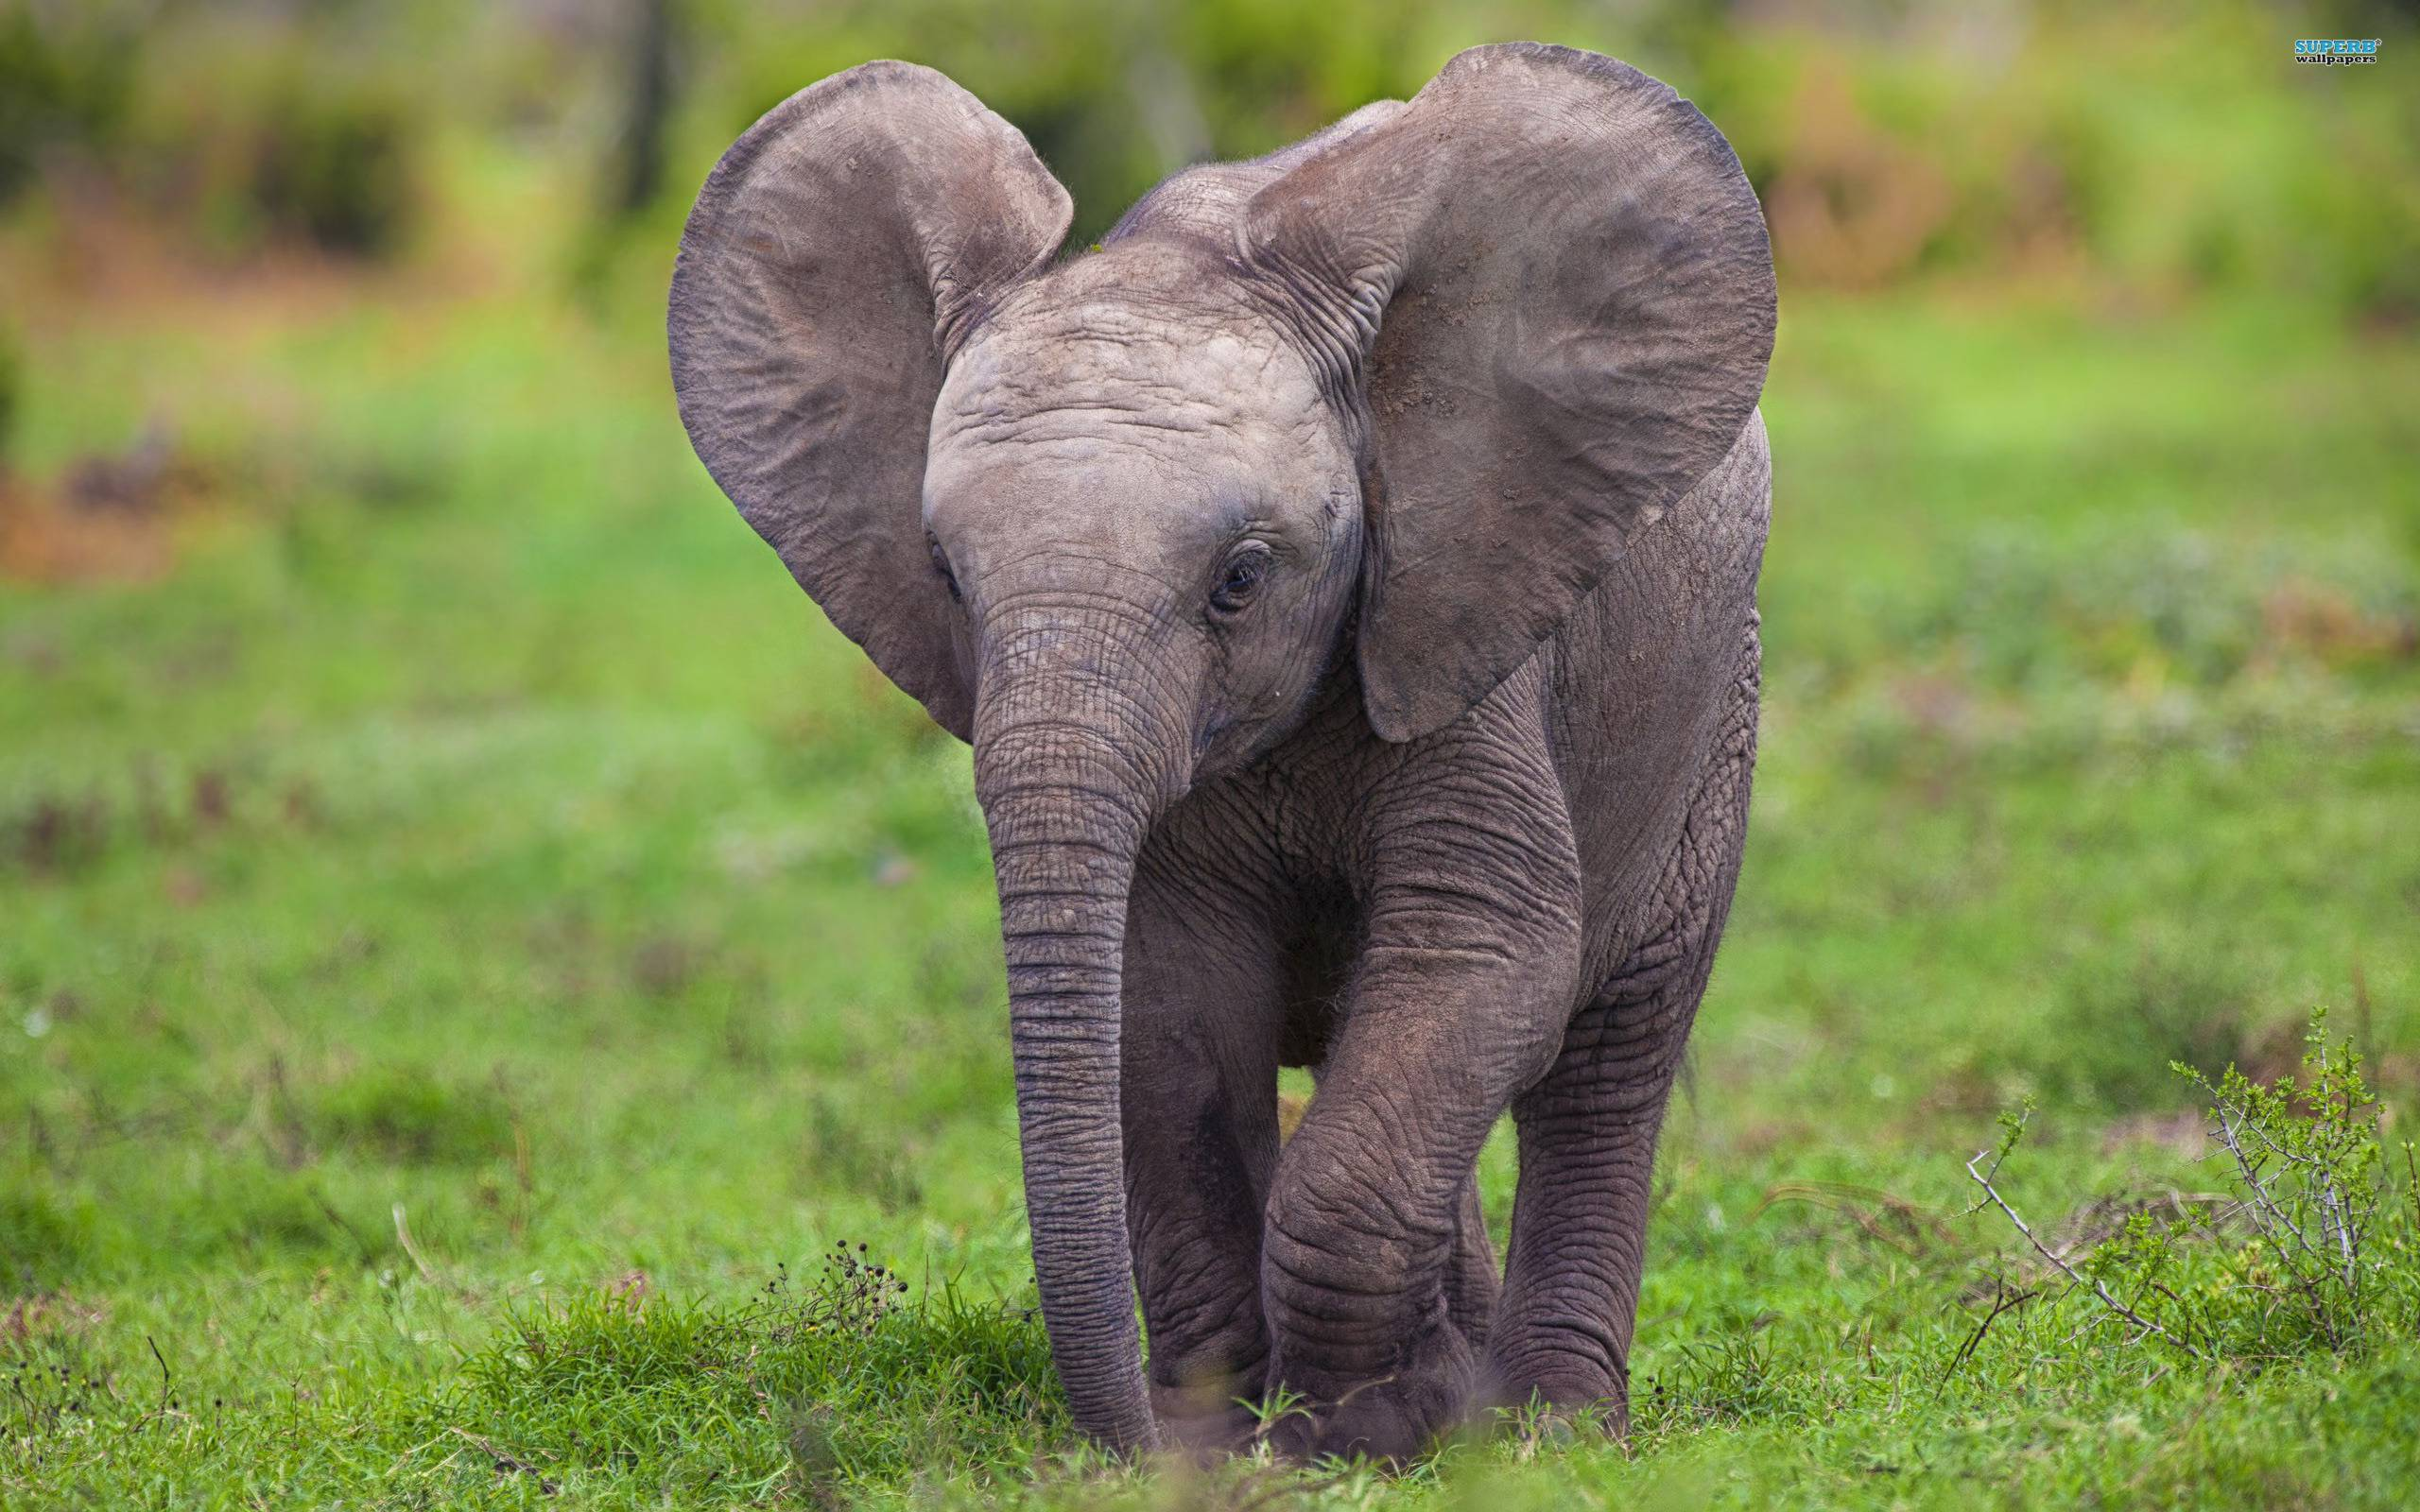 Baby elephant wallpapers wallpaper cave - Baby elephant wallpaper ...